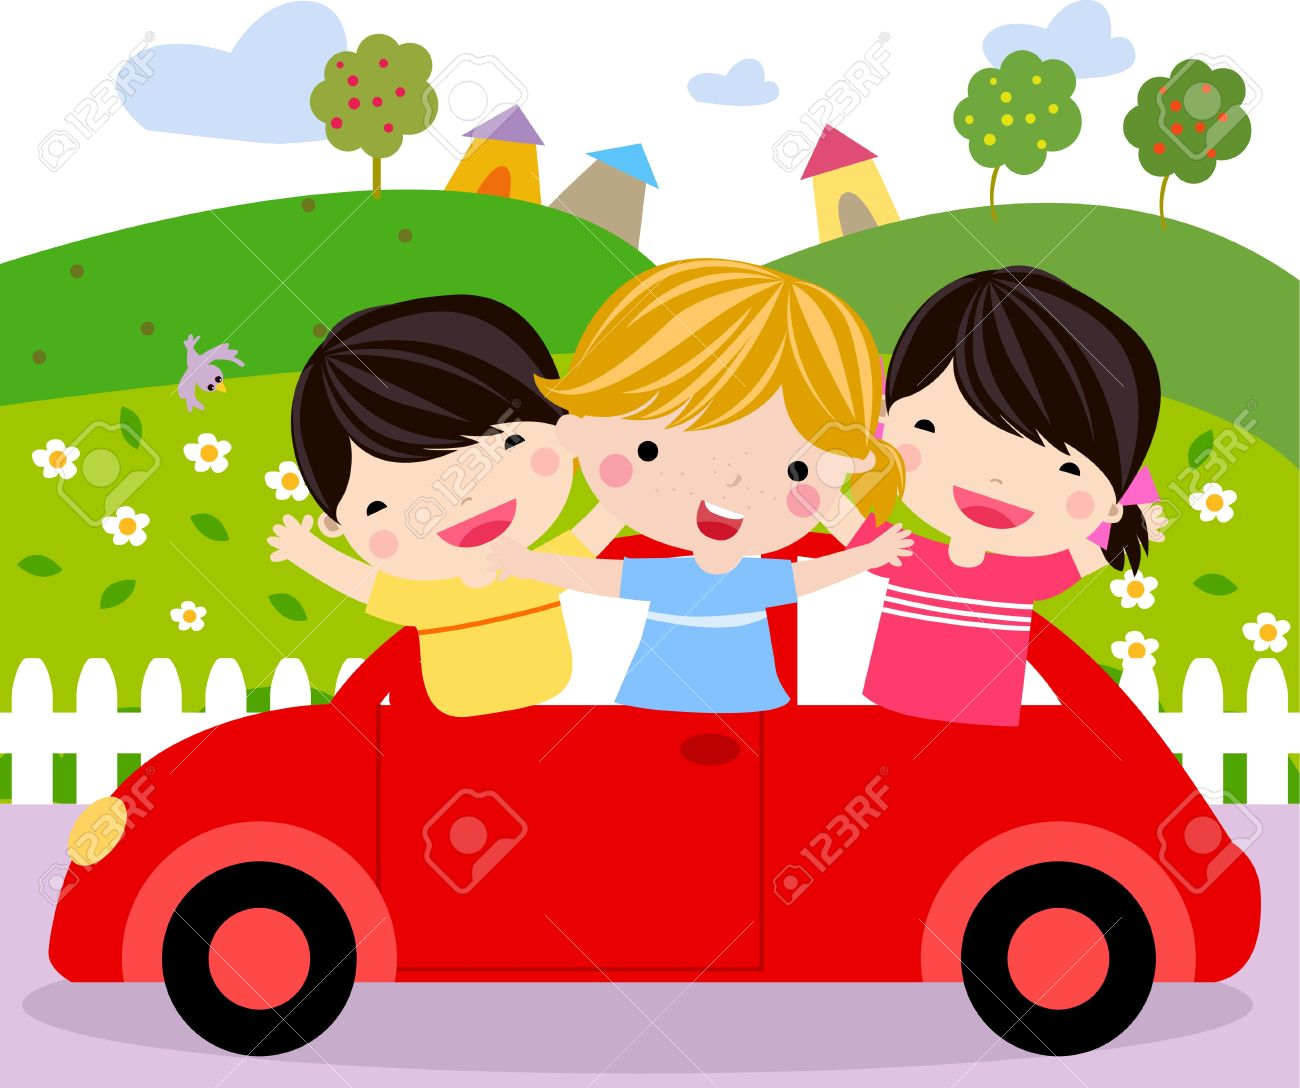 Clipart Of Child Like Car.